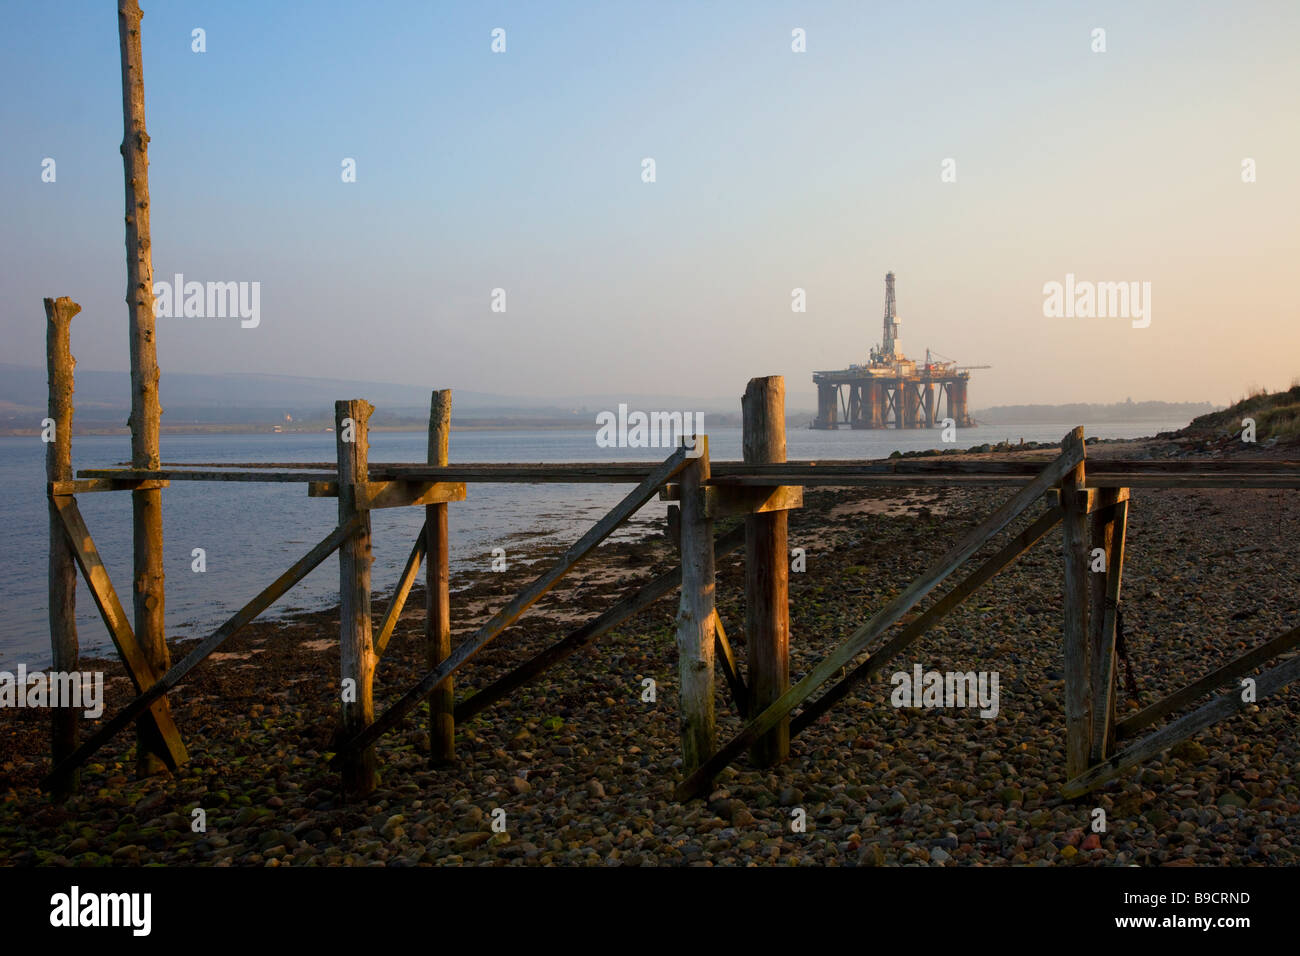 Old Wooden beach jetty & oil rig anchored at Invergordon, Cromarty Firth in northern Scotland, UK - Stock Image